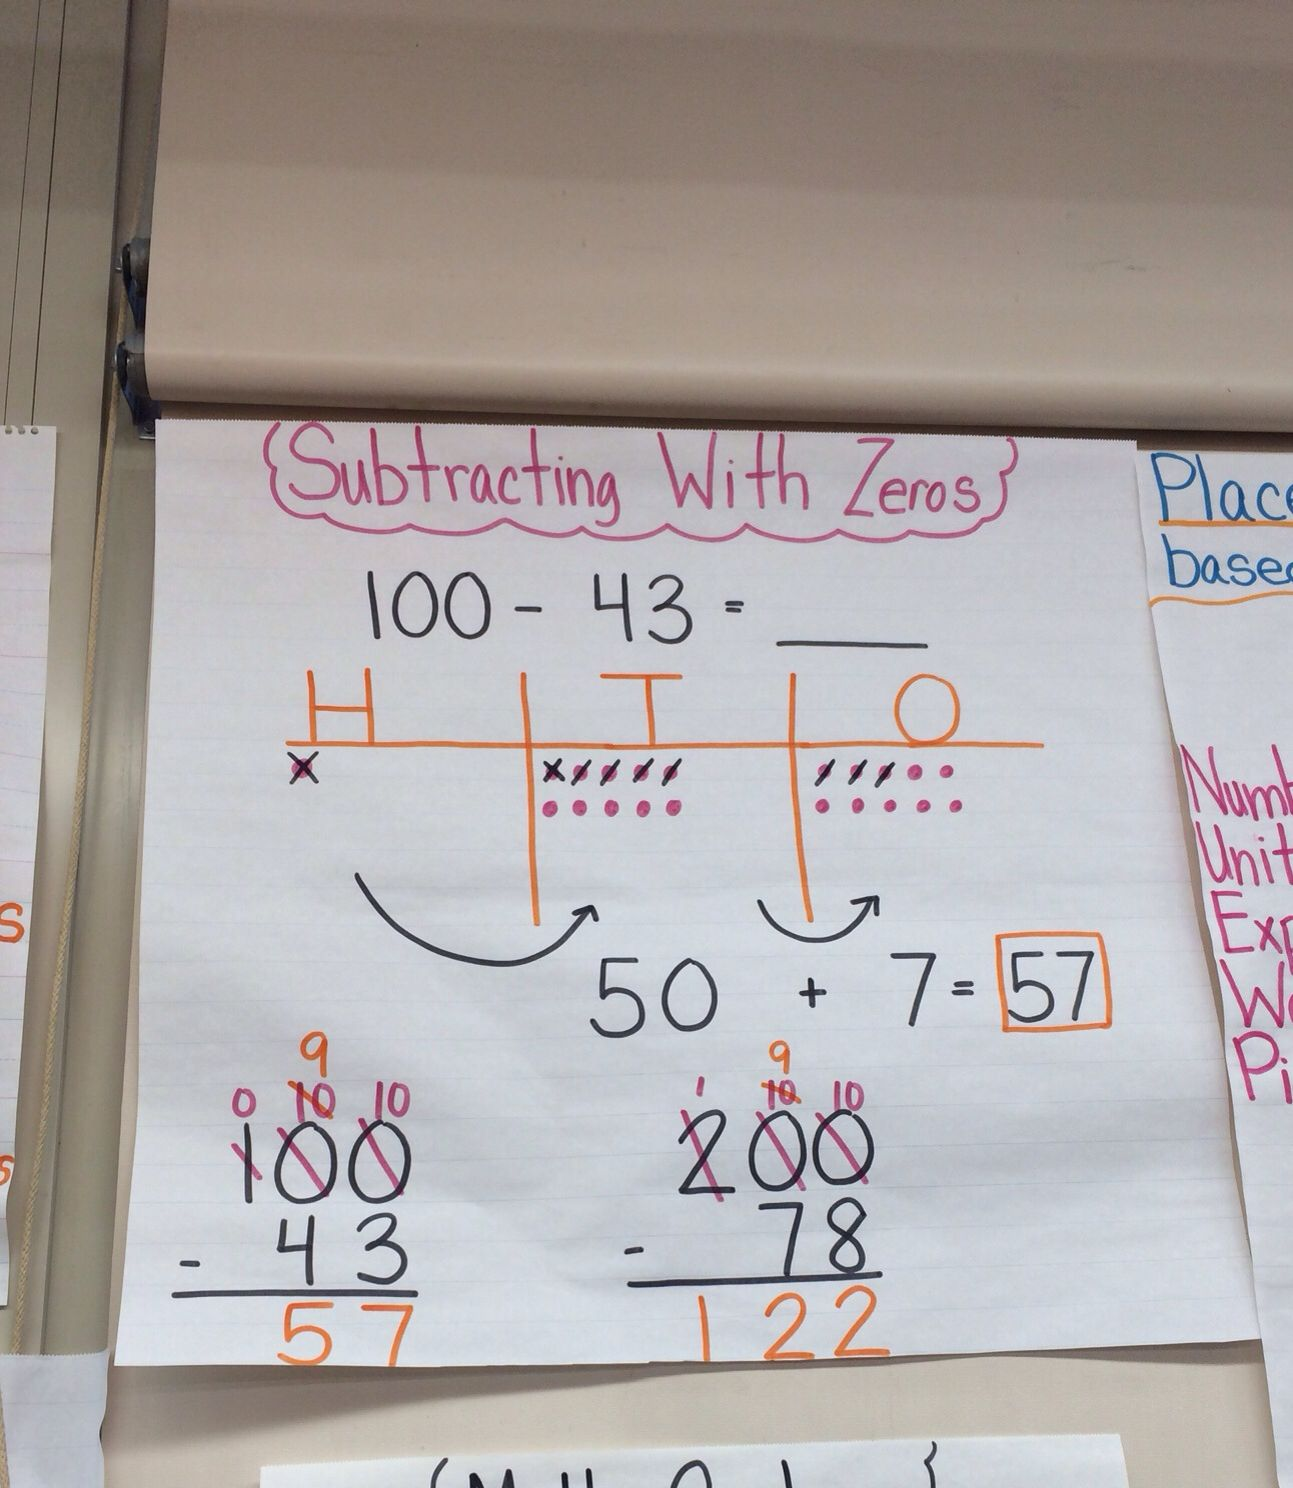 Subtracting With Zeros